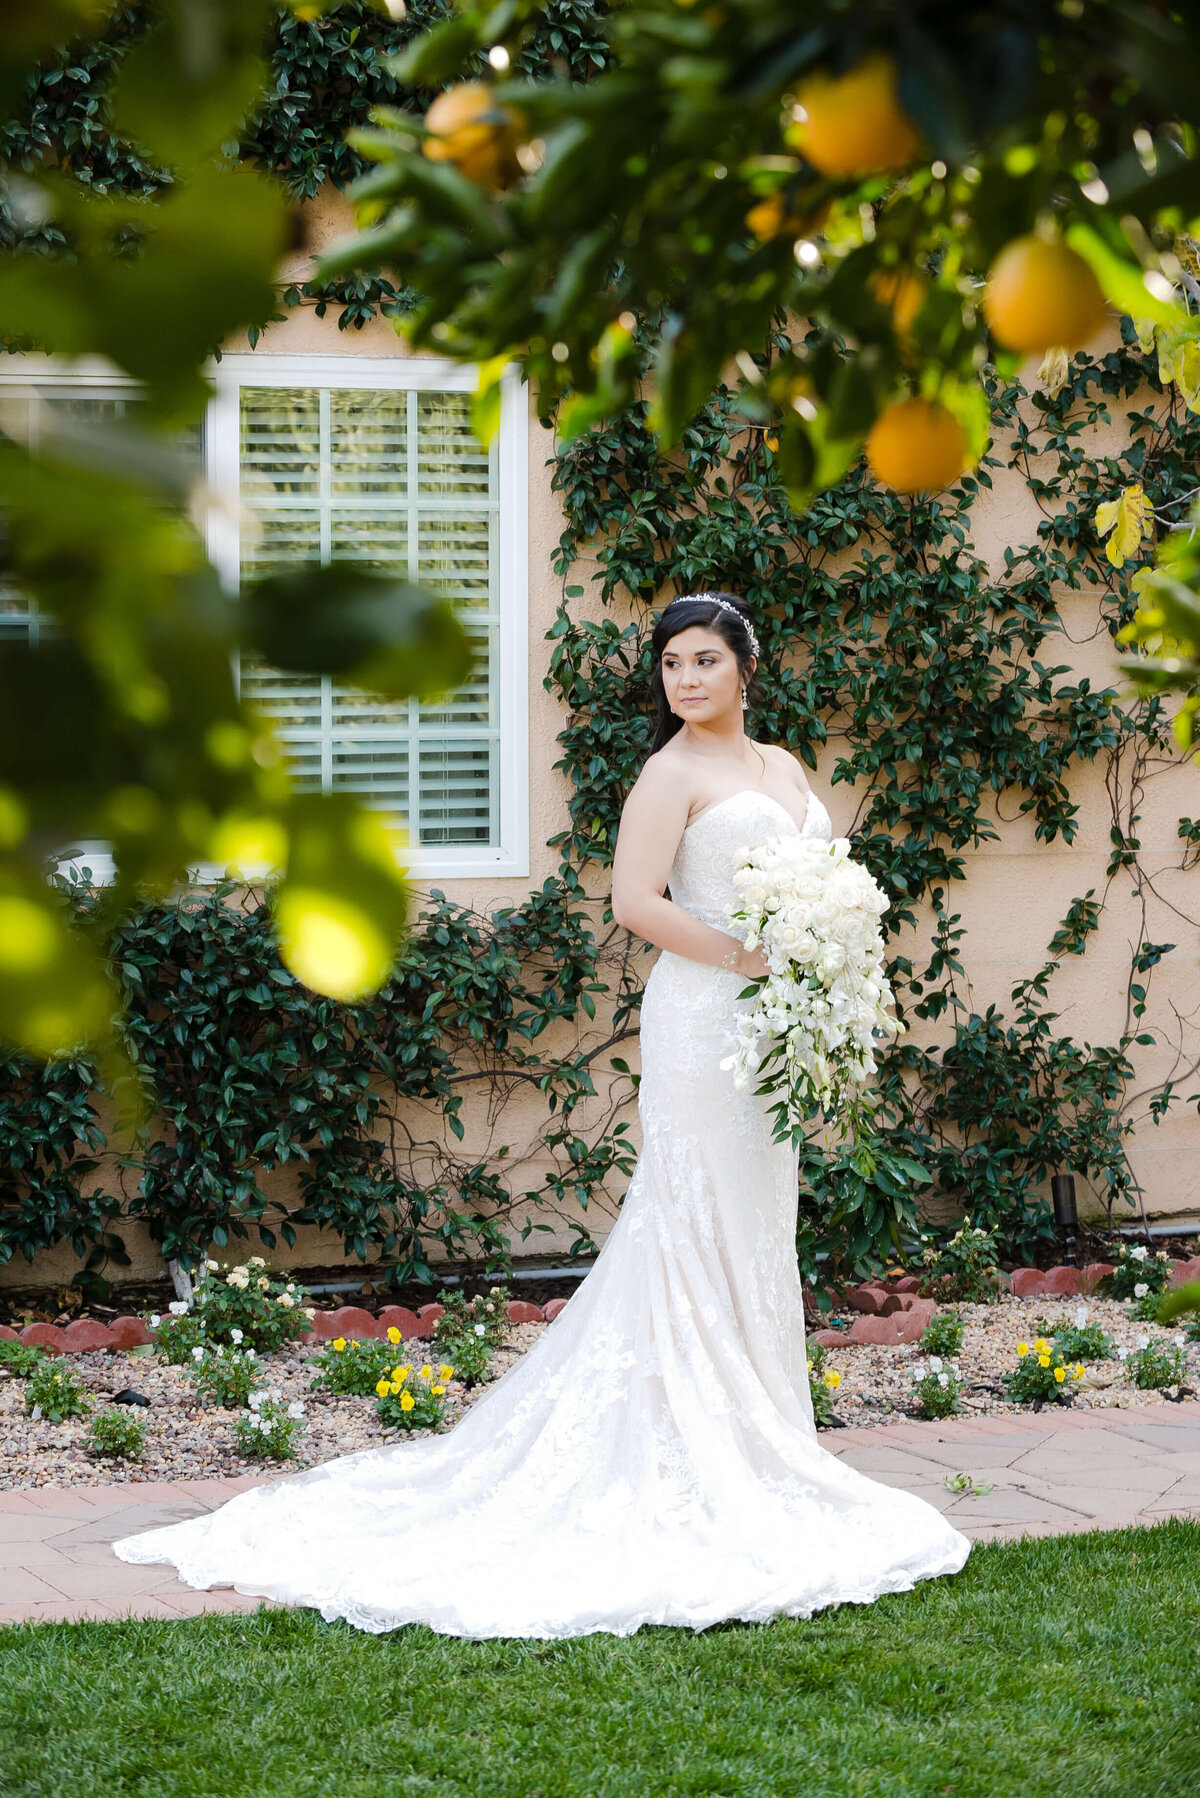 Los Angeles Wedding and Portrait Photographer Karina Pires Photography